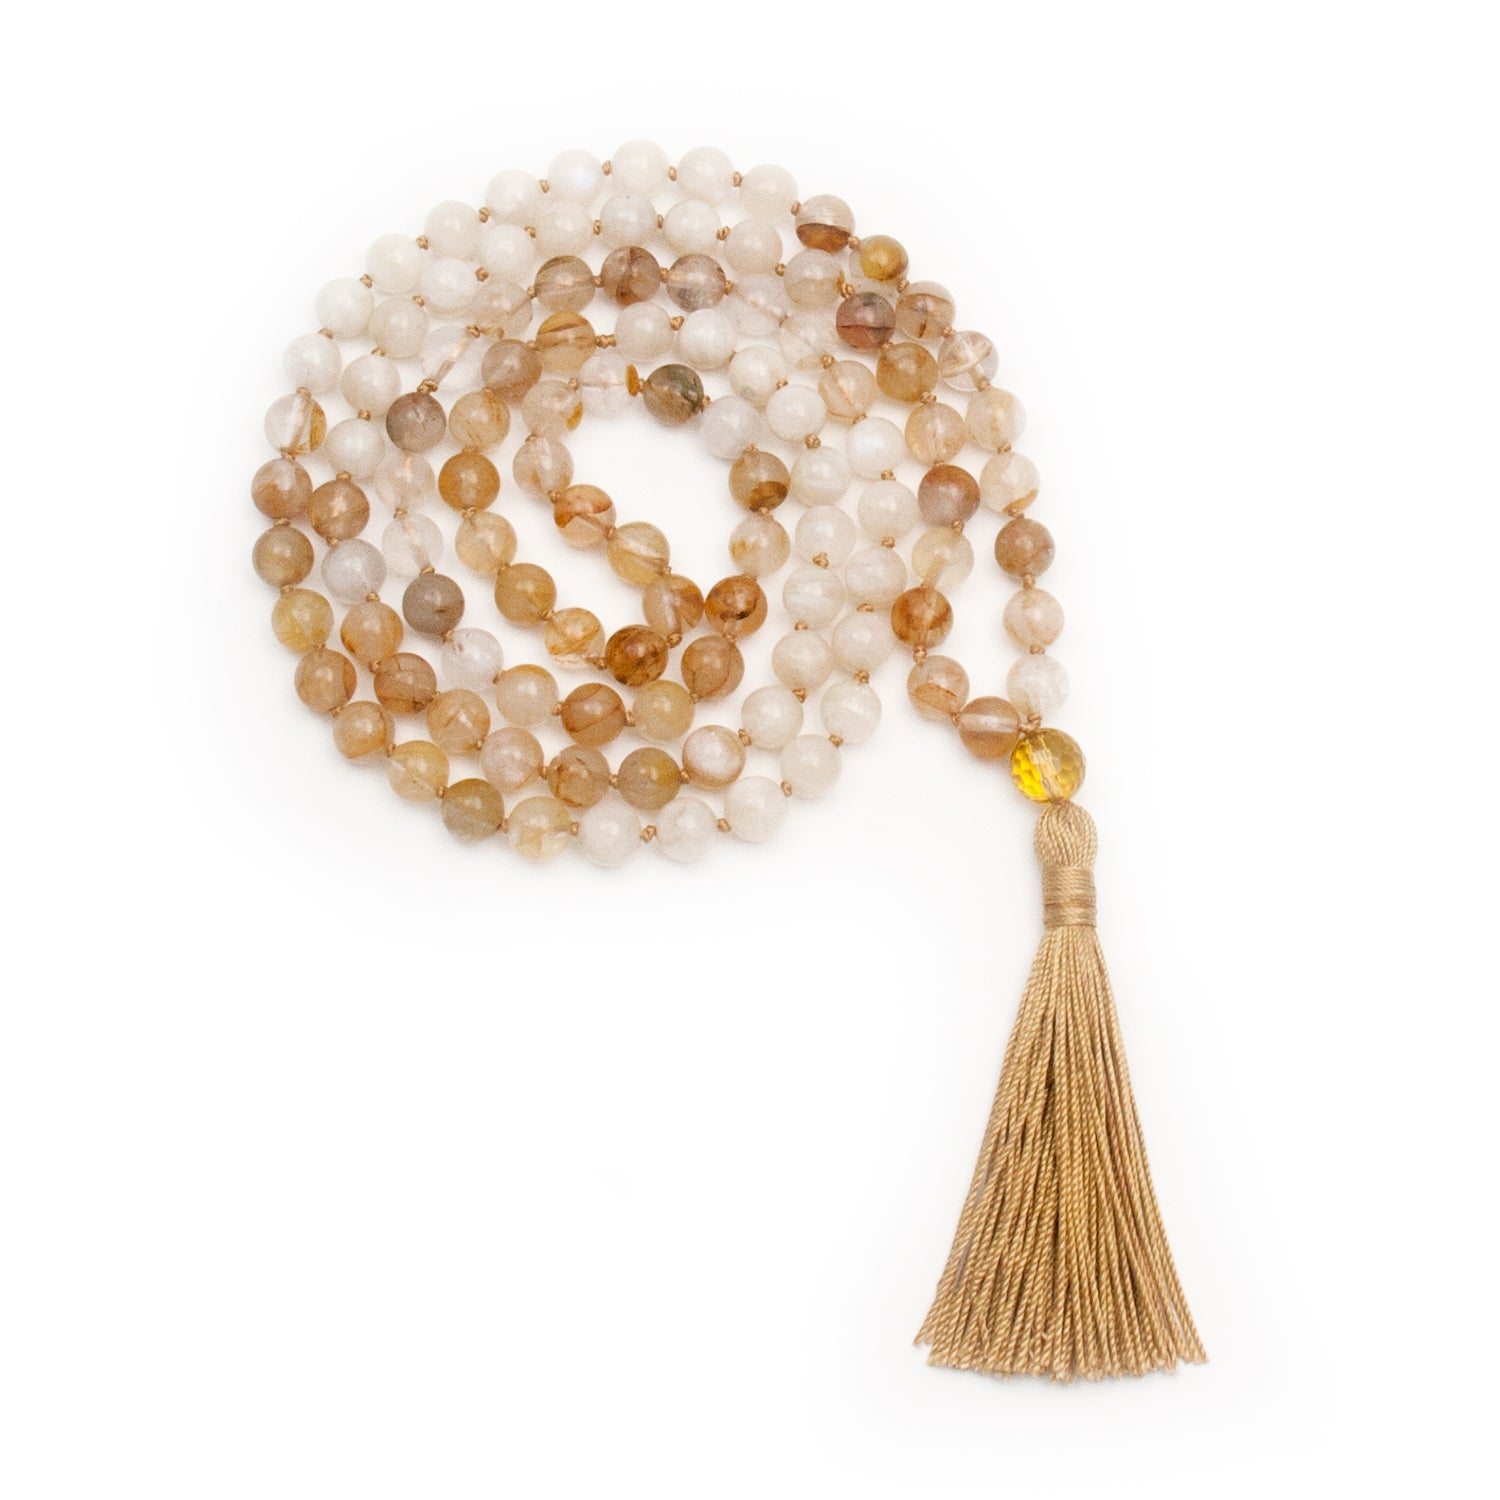 Moonstone and Citrine Mala Necklace